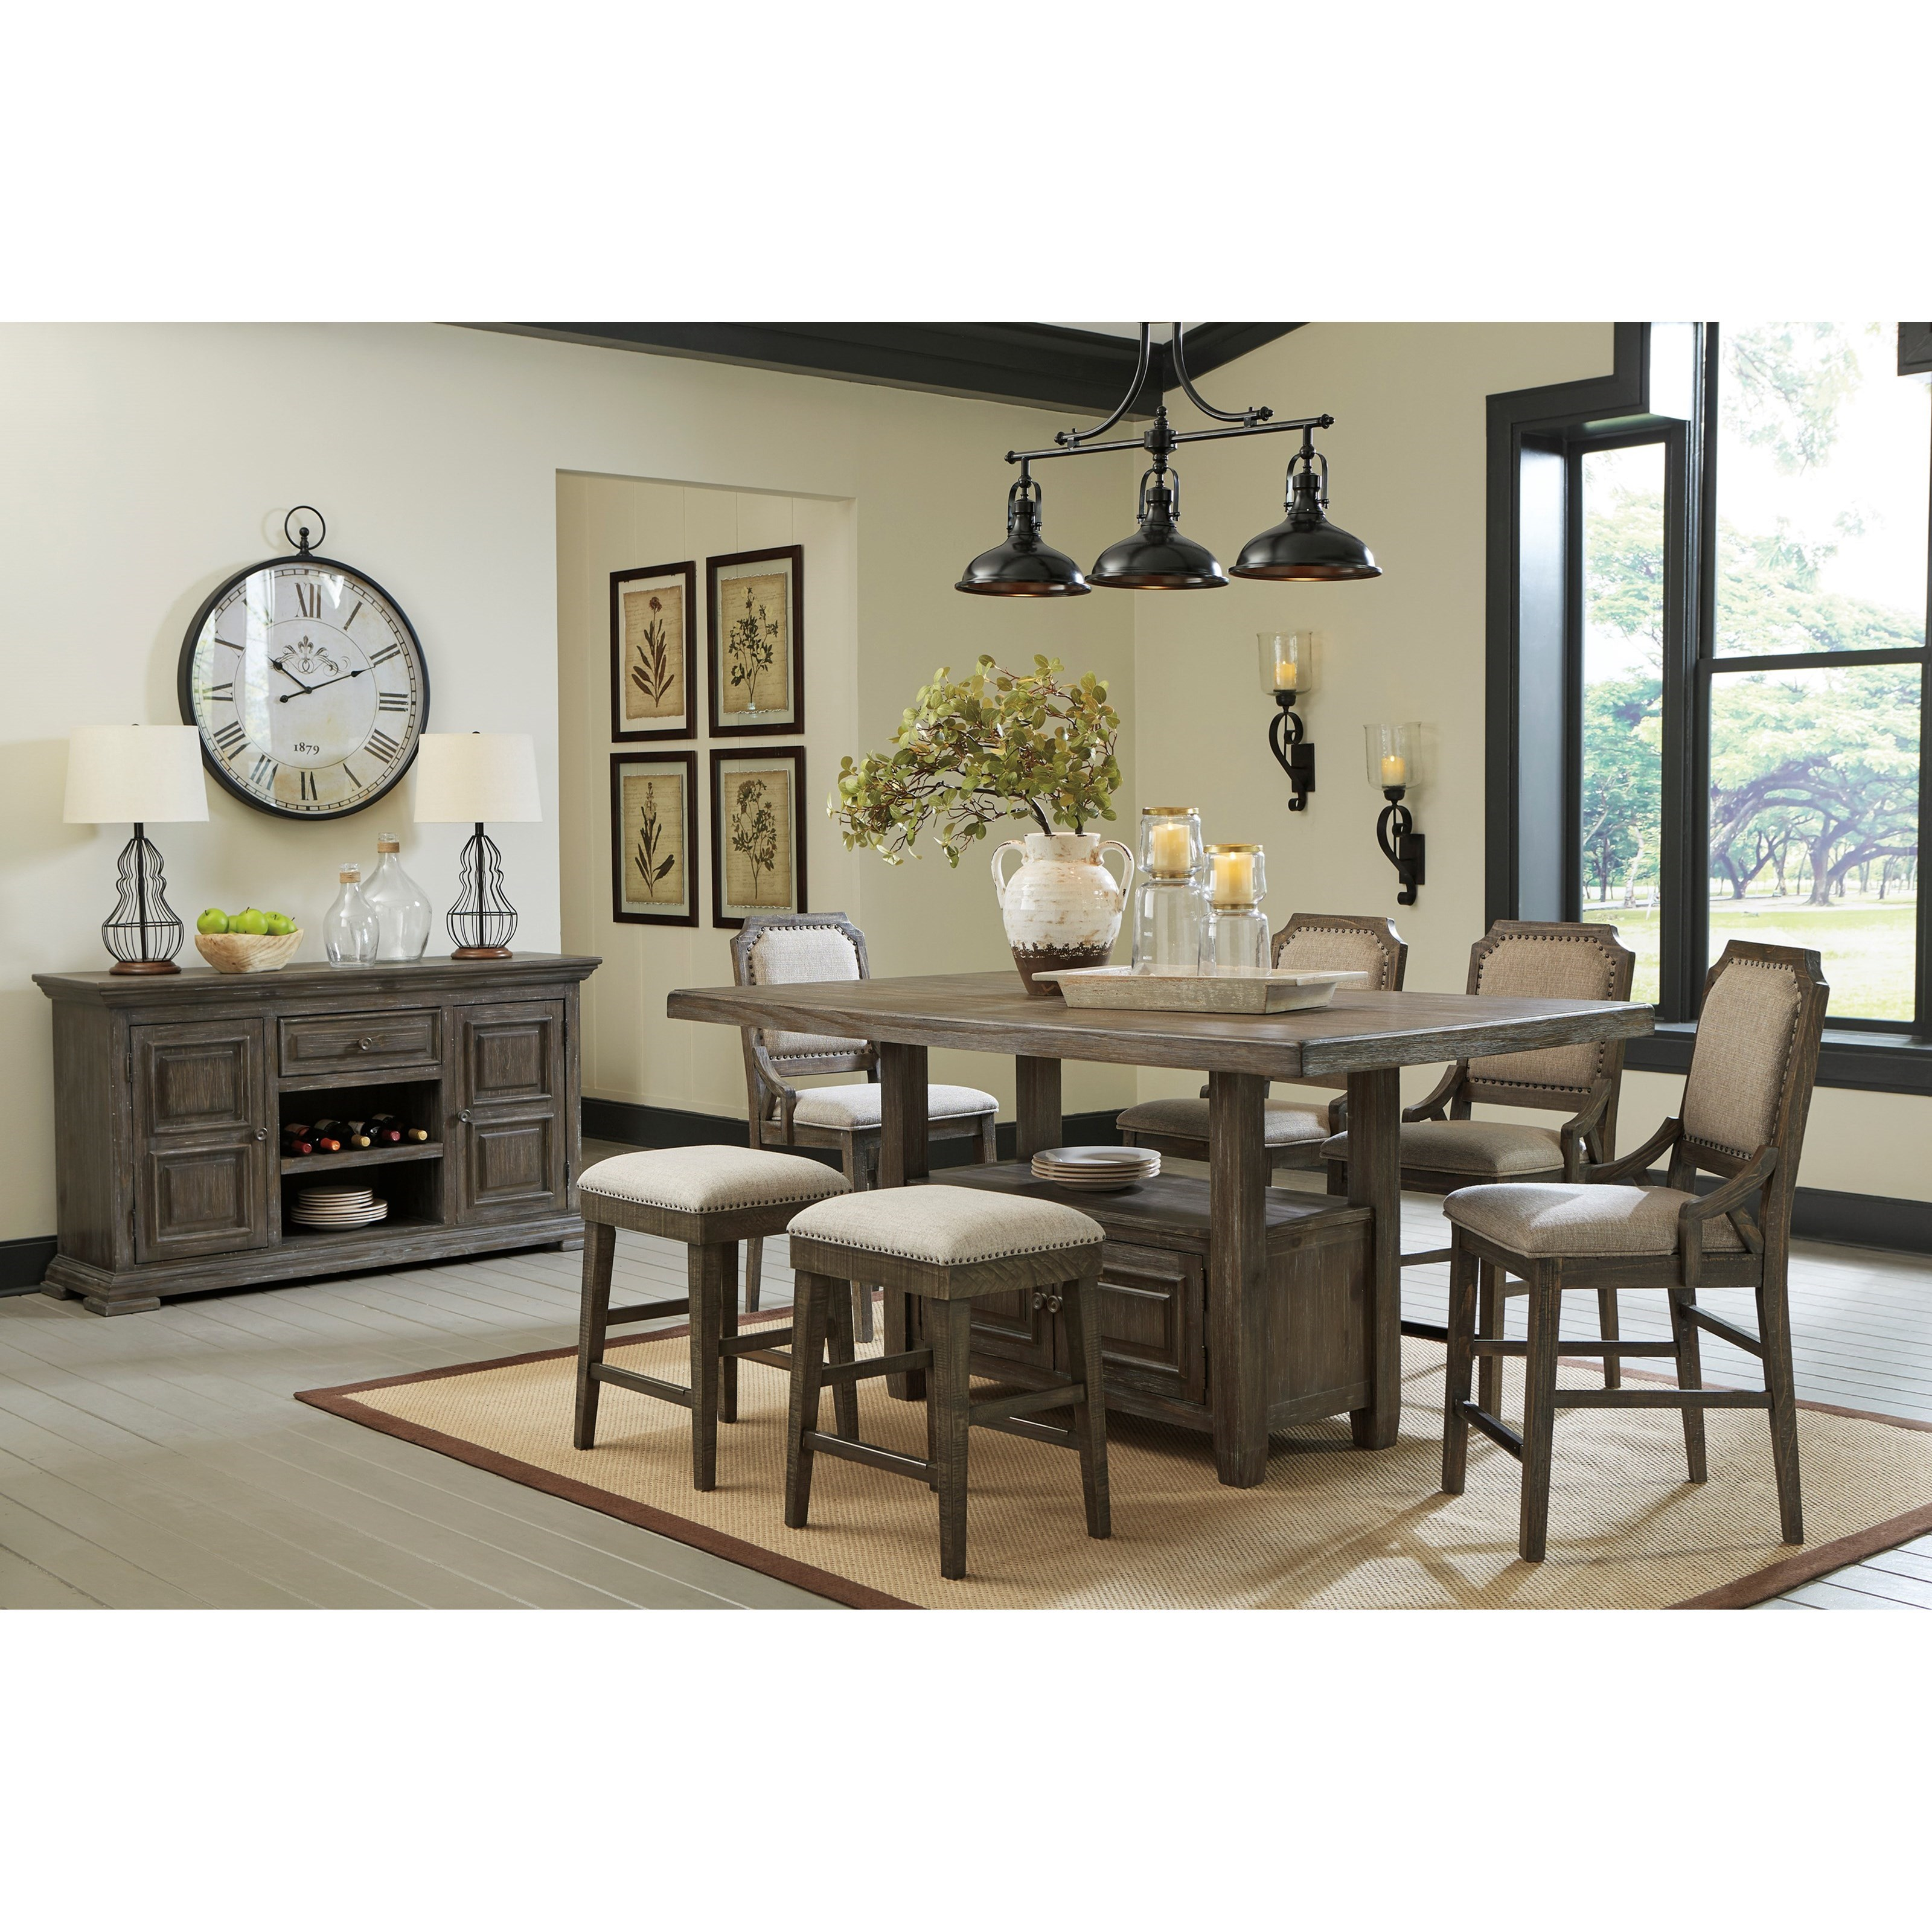 Signature Design By Ashley Wyndahl Dining Room Group A1 Furniture Mattress Formal Dining Room Groups